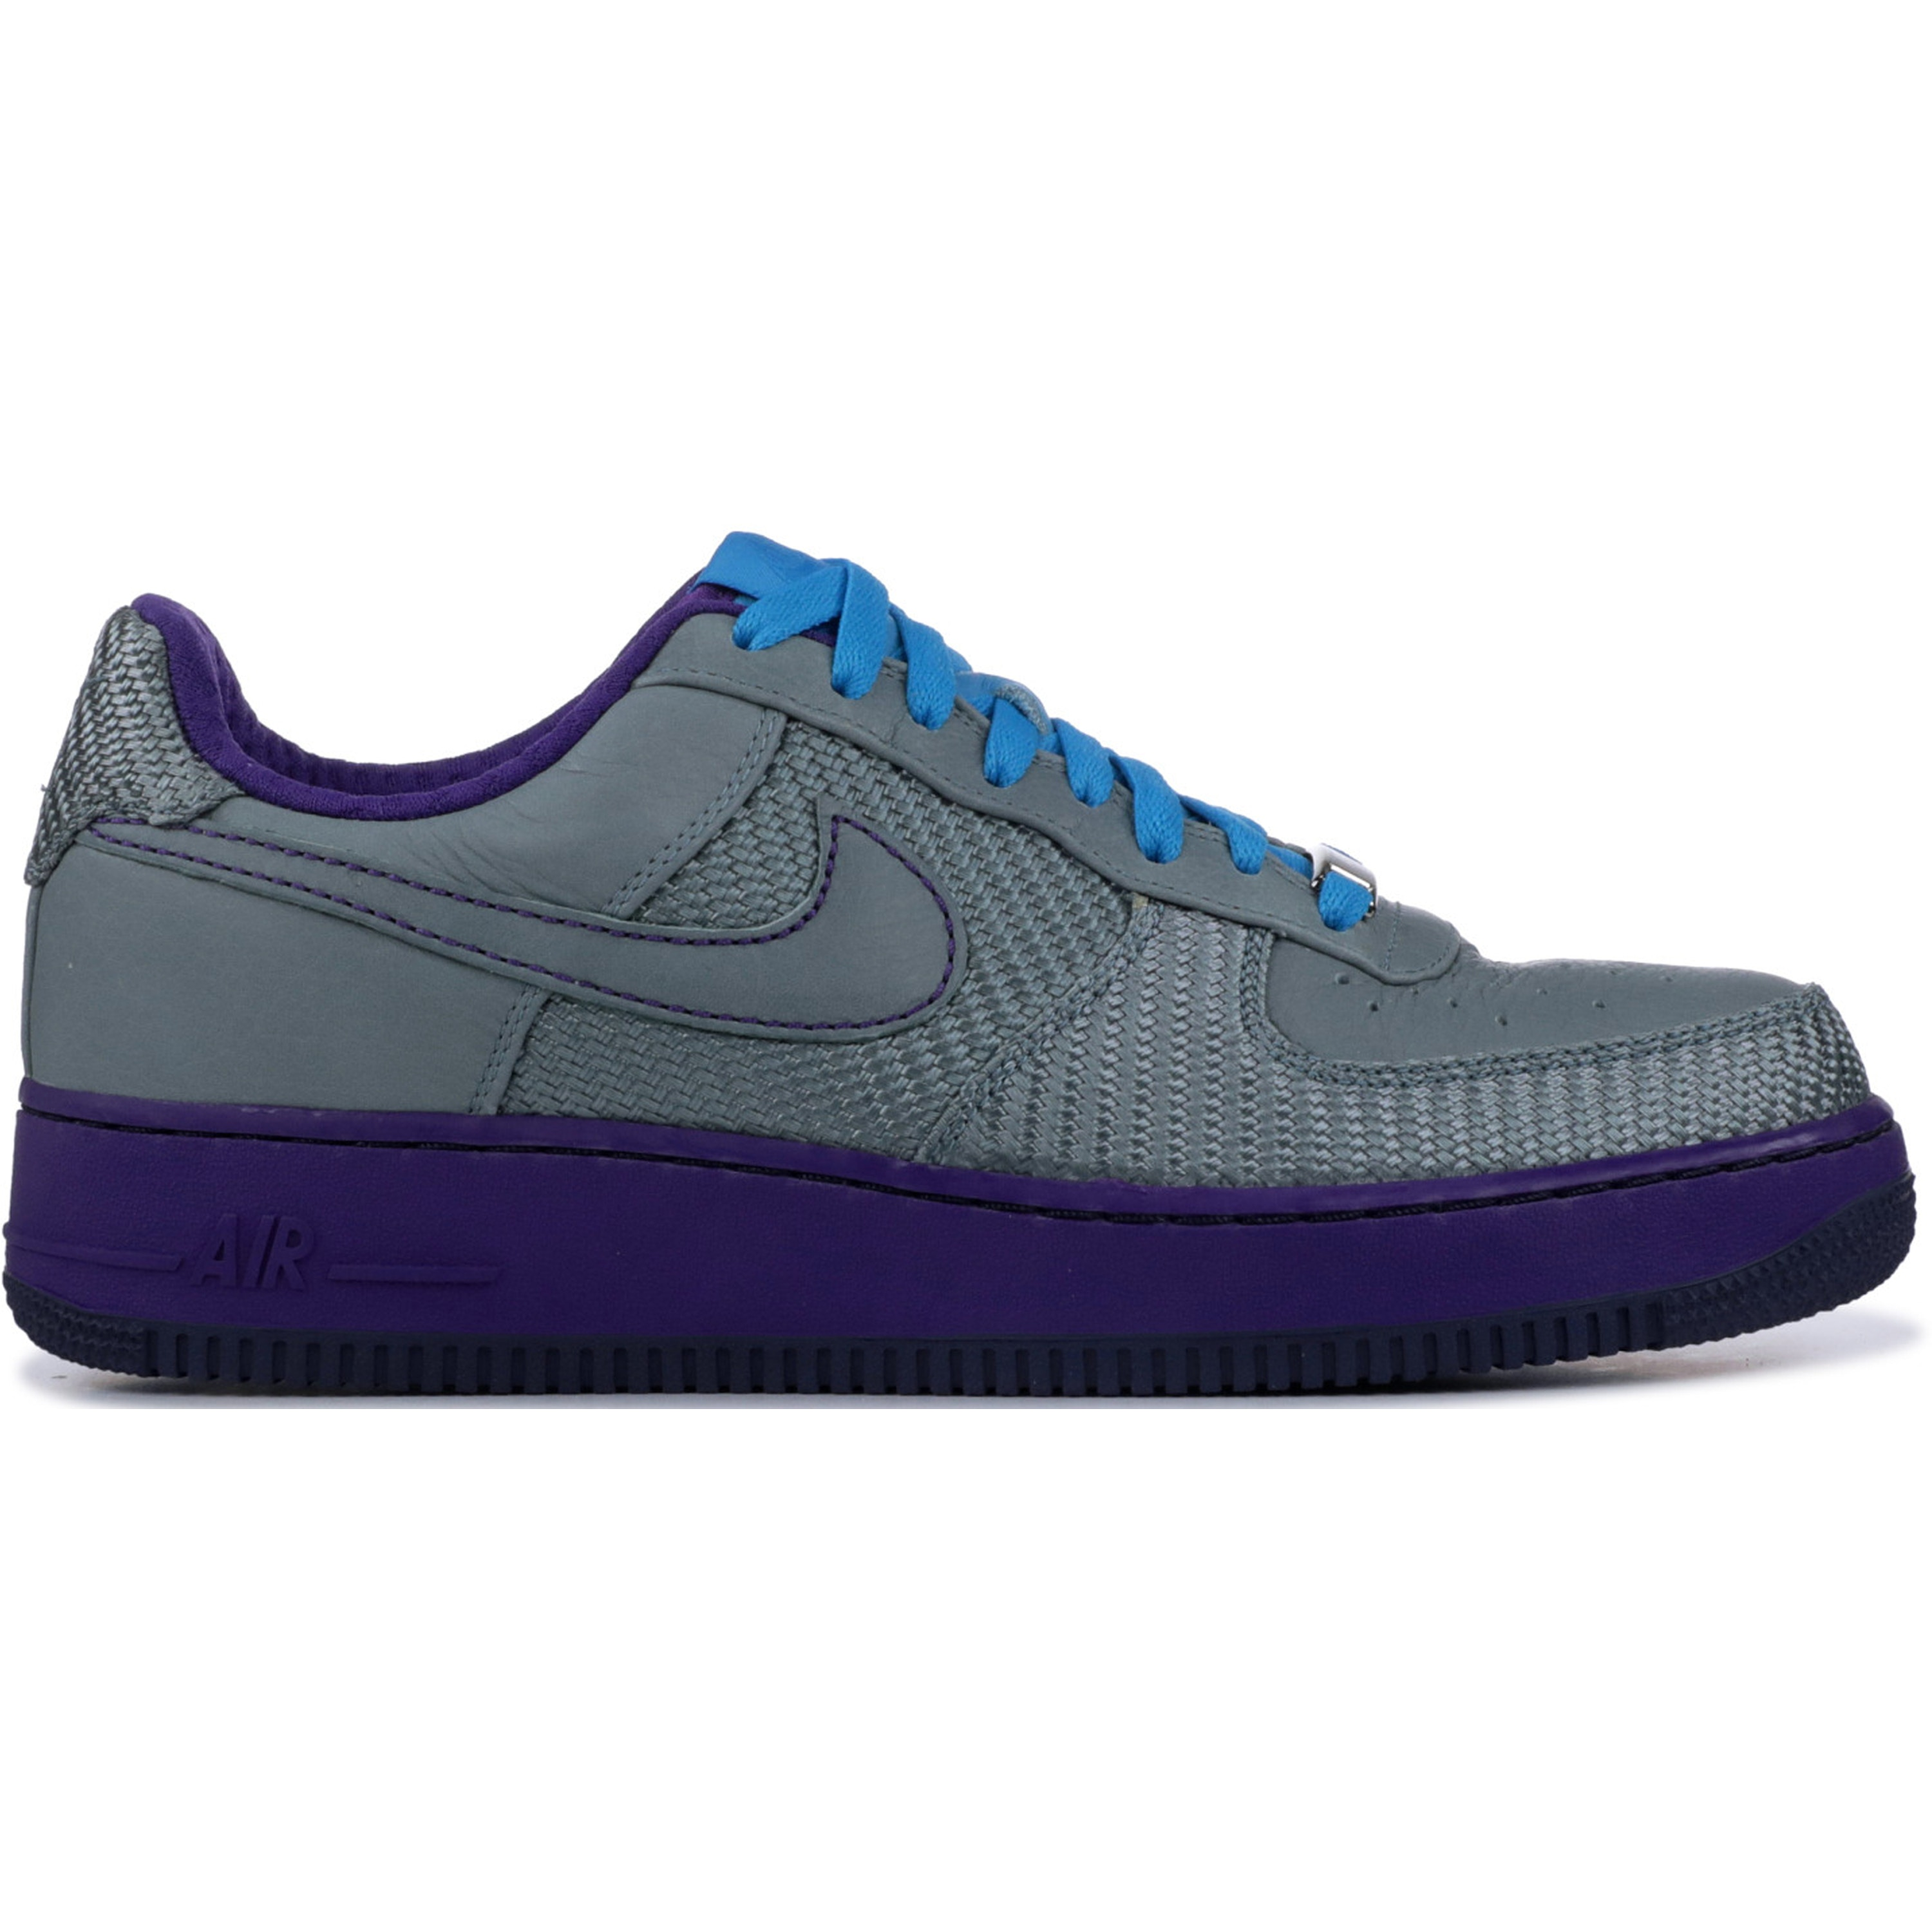 Nike Air Force 1 Low Japan Waterway (315180-331)